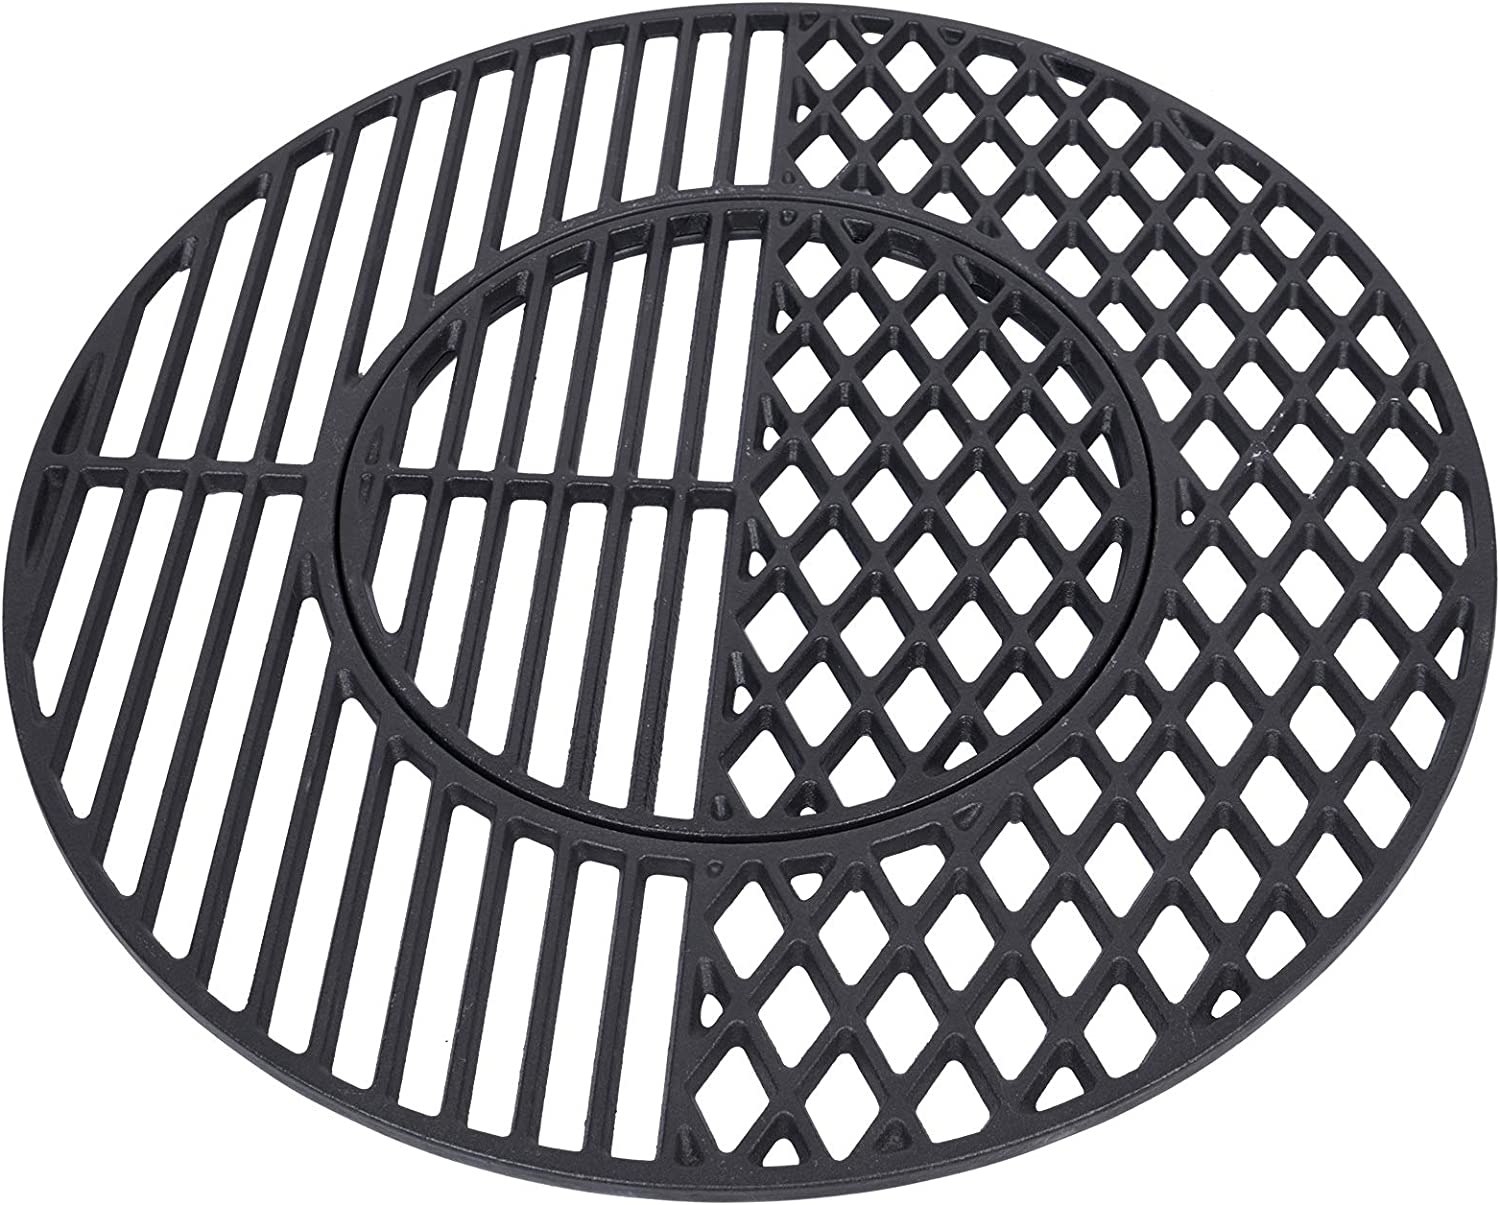 GASPRO 21.5 Inch Grill Grates for Weber 22.5 Inch Kettle, Performer & Charcoal Gas Grills, Durable Cast Iron, Part #8835